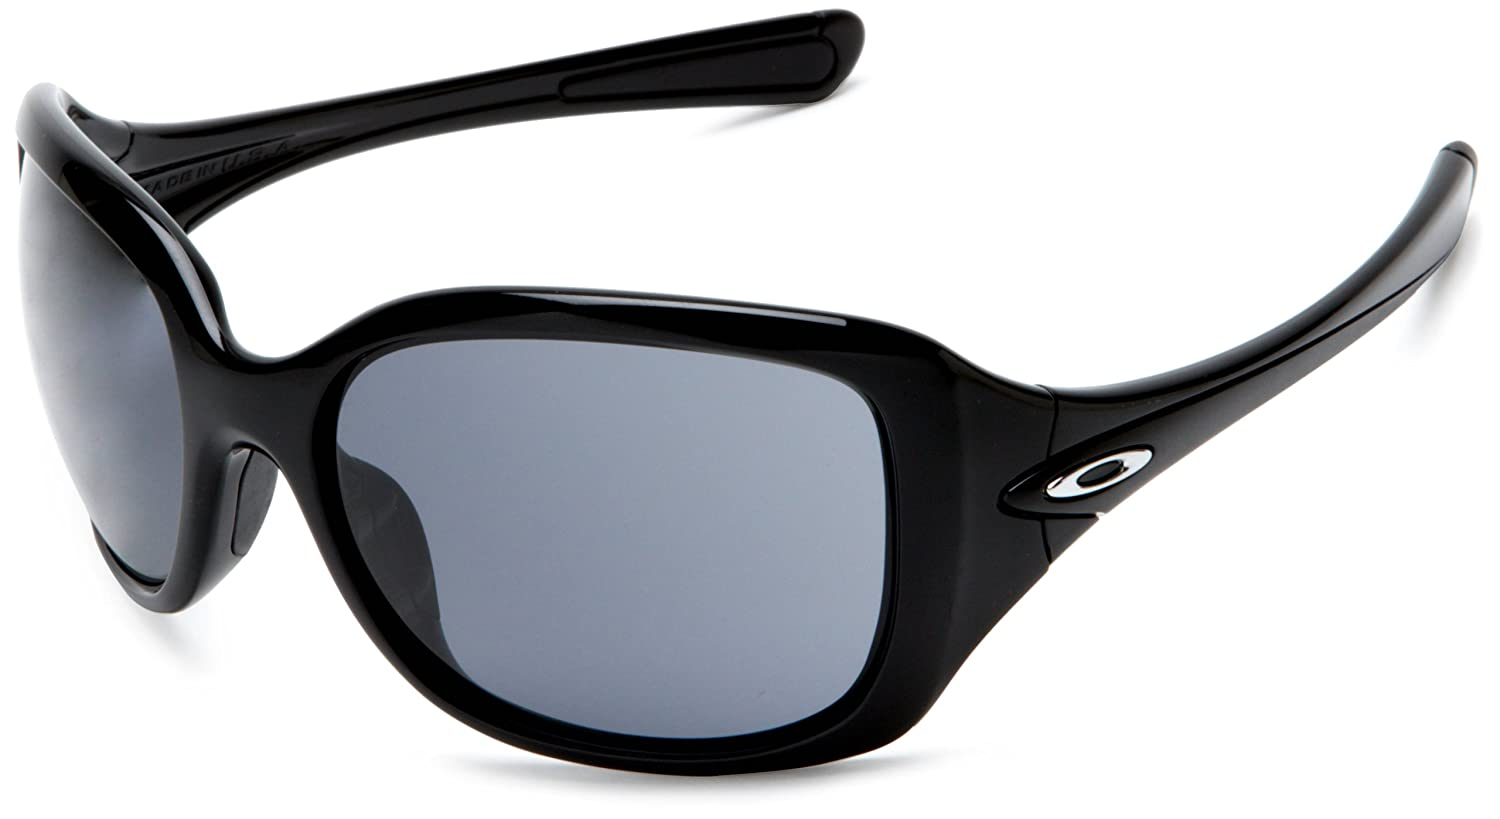 4680245fb1 Oakley Women s Neccessity Sunglasses OO9122-05  Oakley  Amazon.co.uk   Clothing